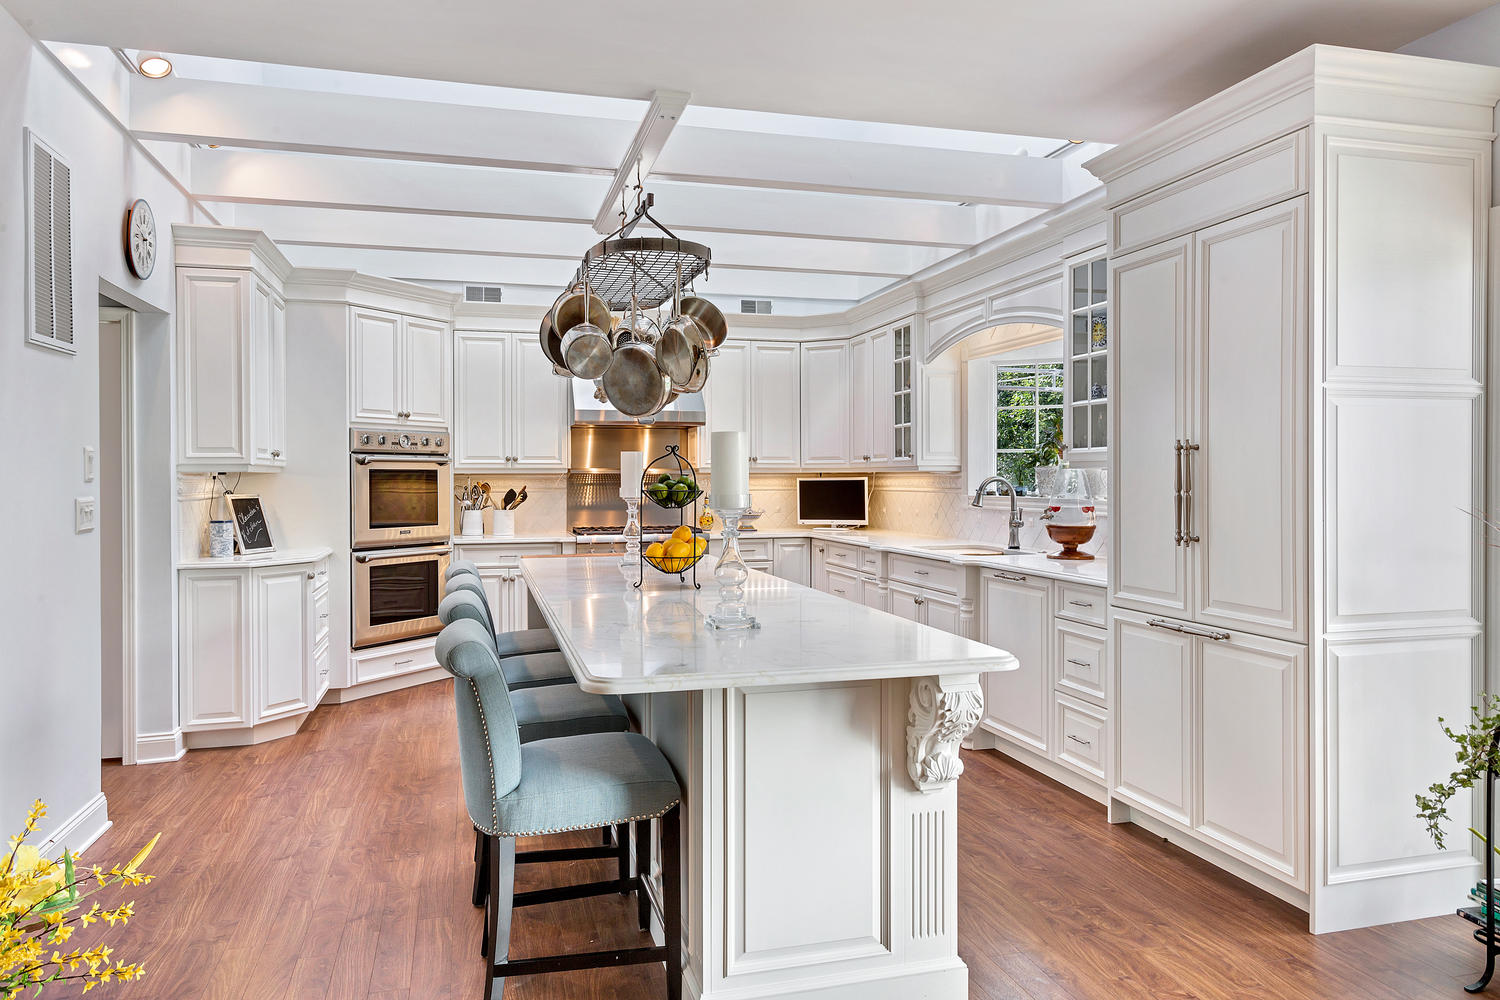 Luxury White Kitchen Luxury White Kitchen Avon